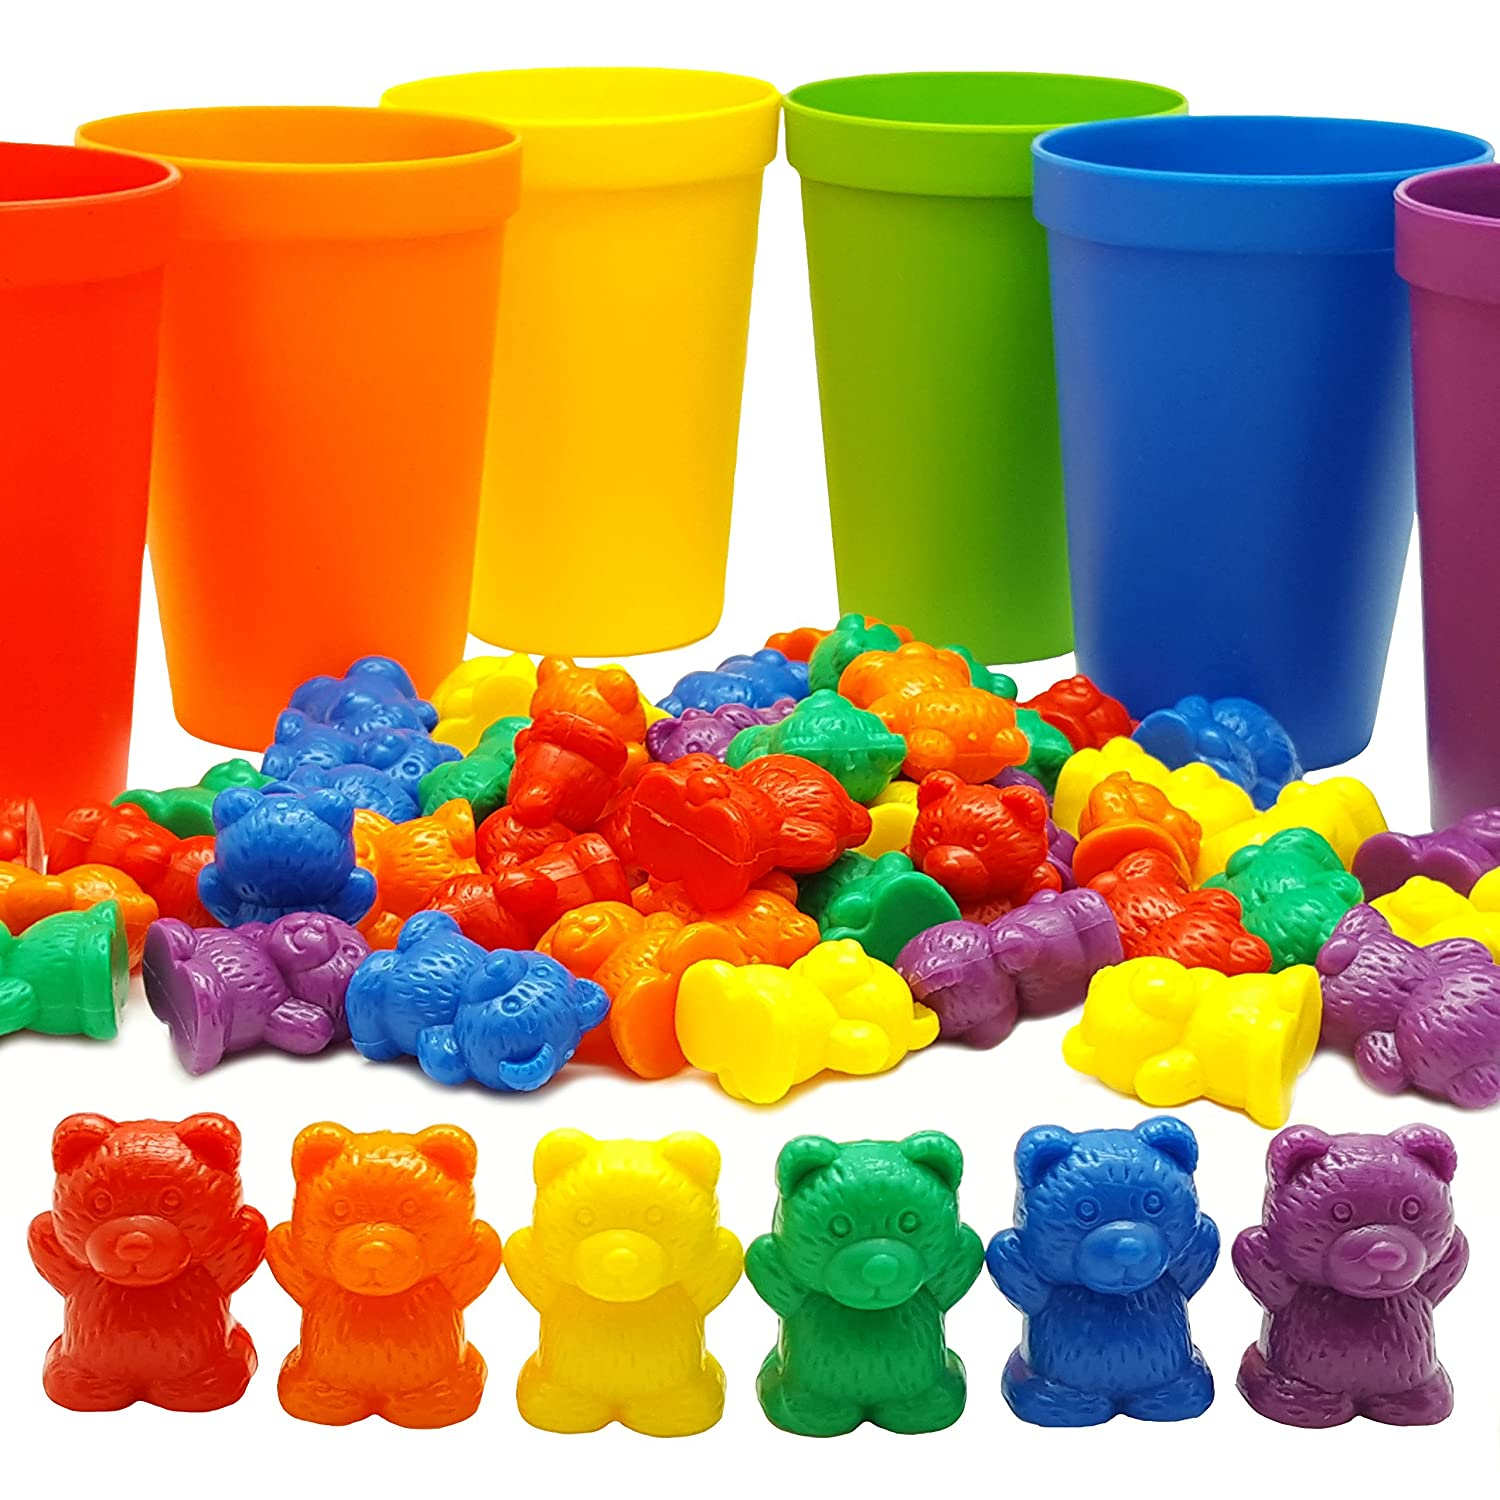 60 Rainbow Counting Bears with 6 Color Matching Sorting Cups Set by Skoolzy- Montessori Toddler Counters & Preschool Math Manipulative Toys for Girls and Boys - Free Activity Guide Download